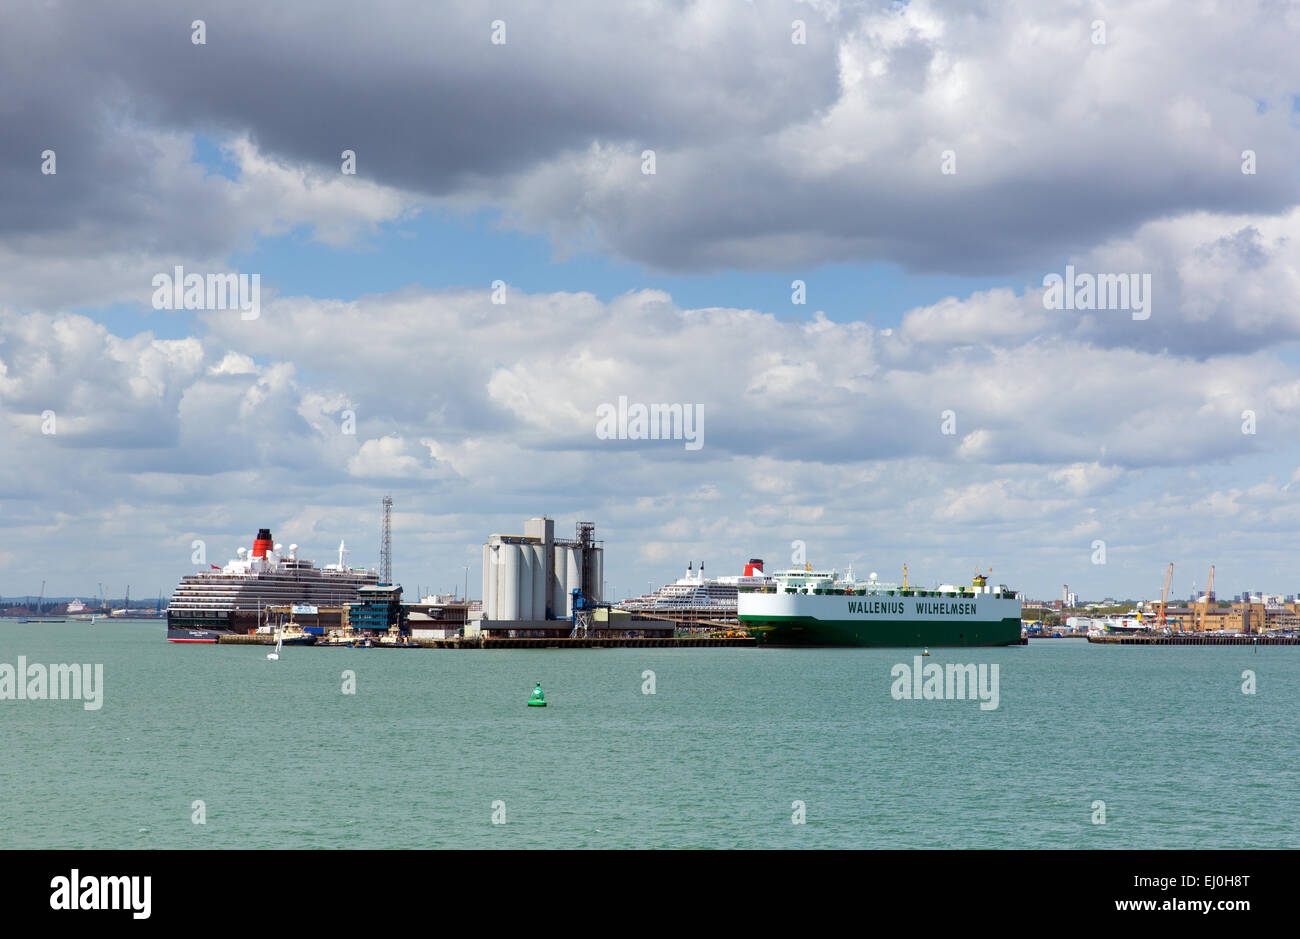 Southampton Docks With Big Cruise Ship And Cargo Vessel On Calm Summer Day With Fine Weather Blue Sky And White Clouds